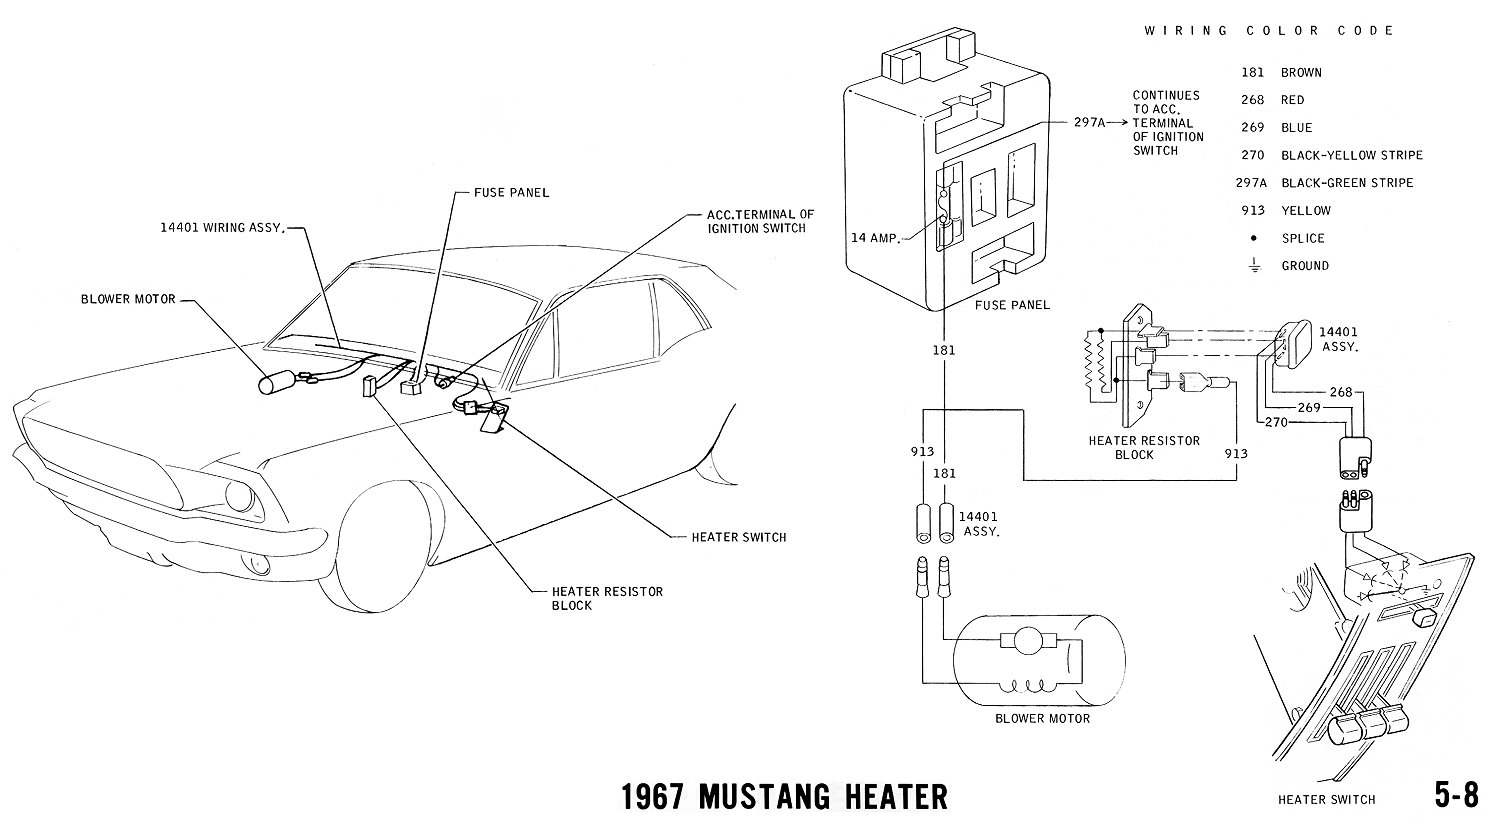 67heater 1967 mustang wiring and vacuum diagrams average joe restoration 68 mustang headlight wiring diagram at readyjetset.co